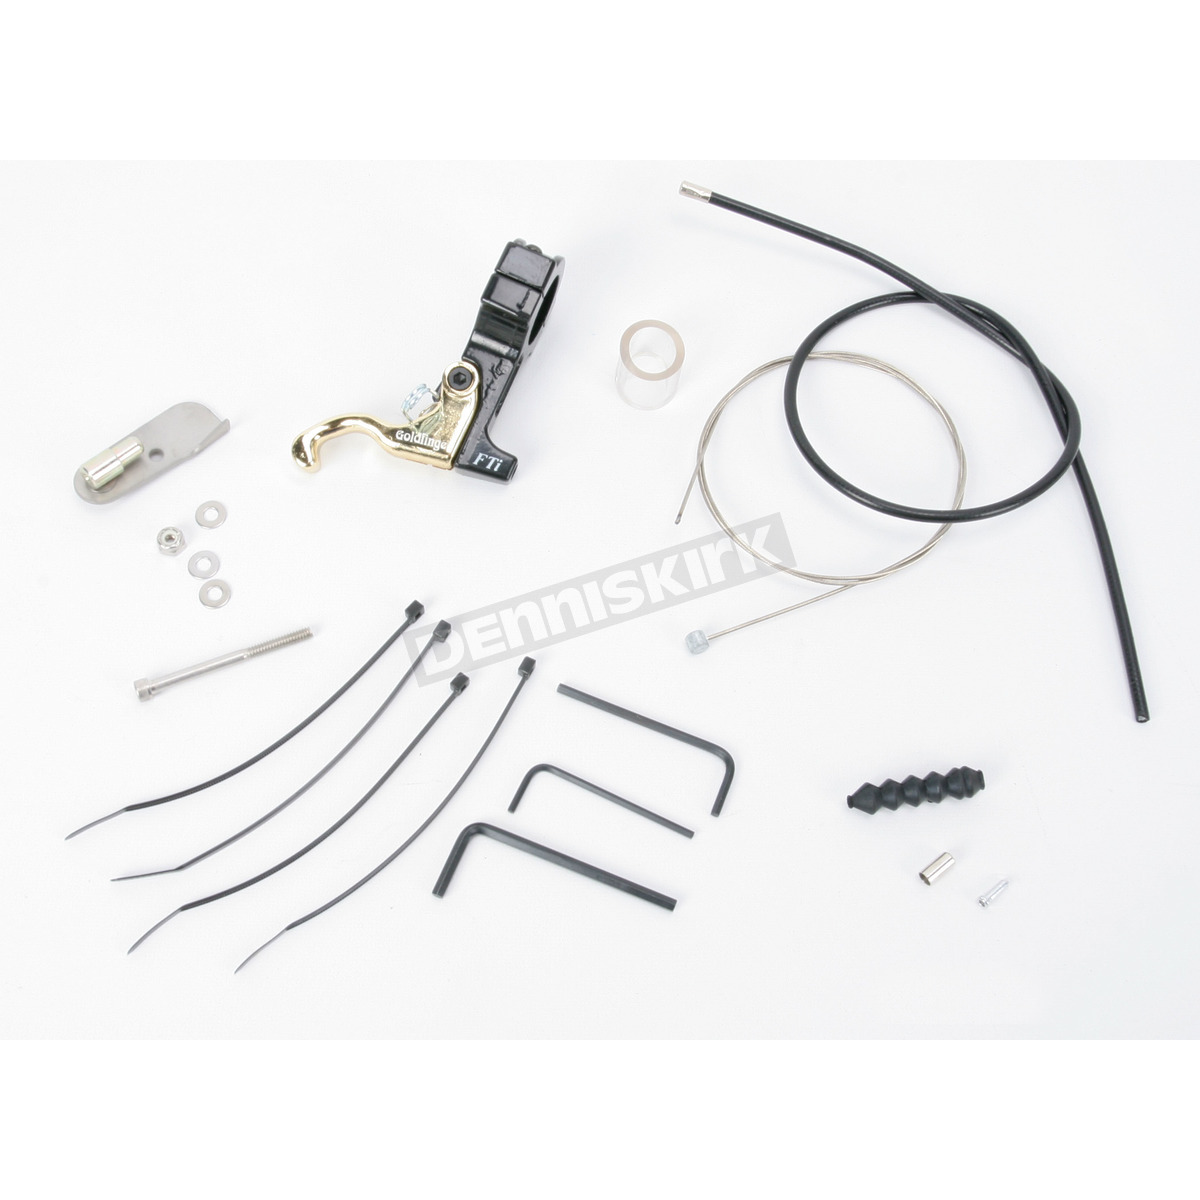 Full Throttle Inc. Goldfinger Left Hand Throttle Kit for